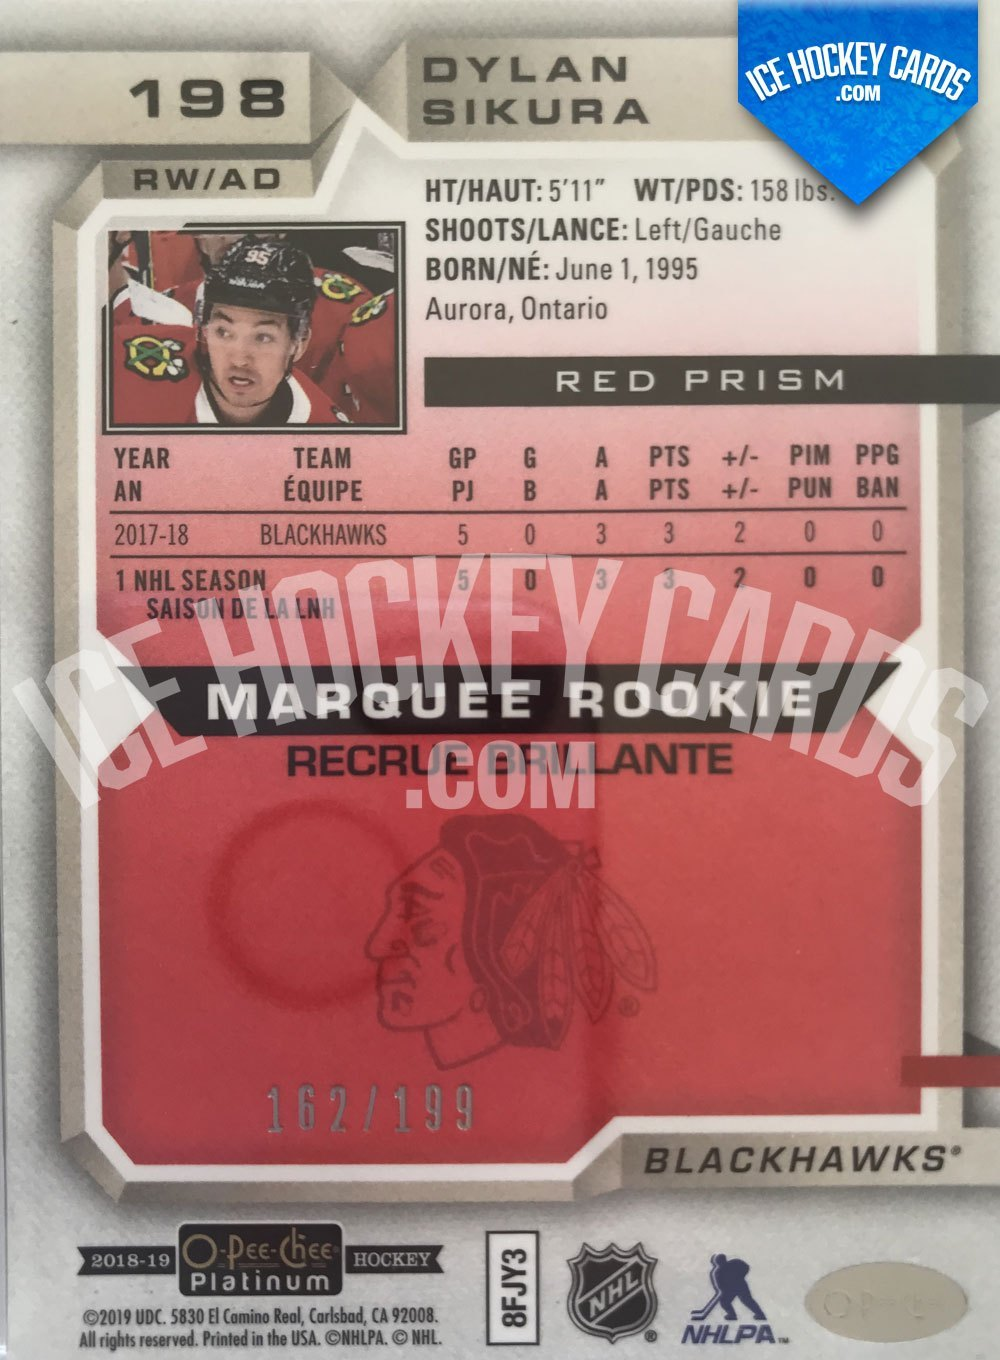 Upper Deck - O-Pee-Chee Platinum 18-19 - Dylan Sikura Marquee Rookie Red Prism back